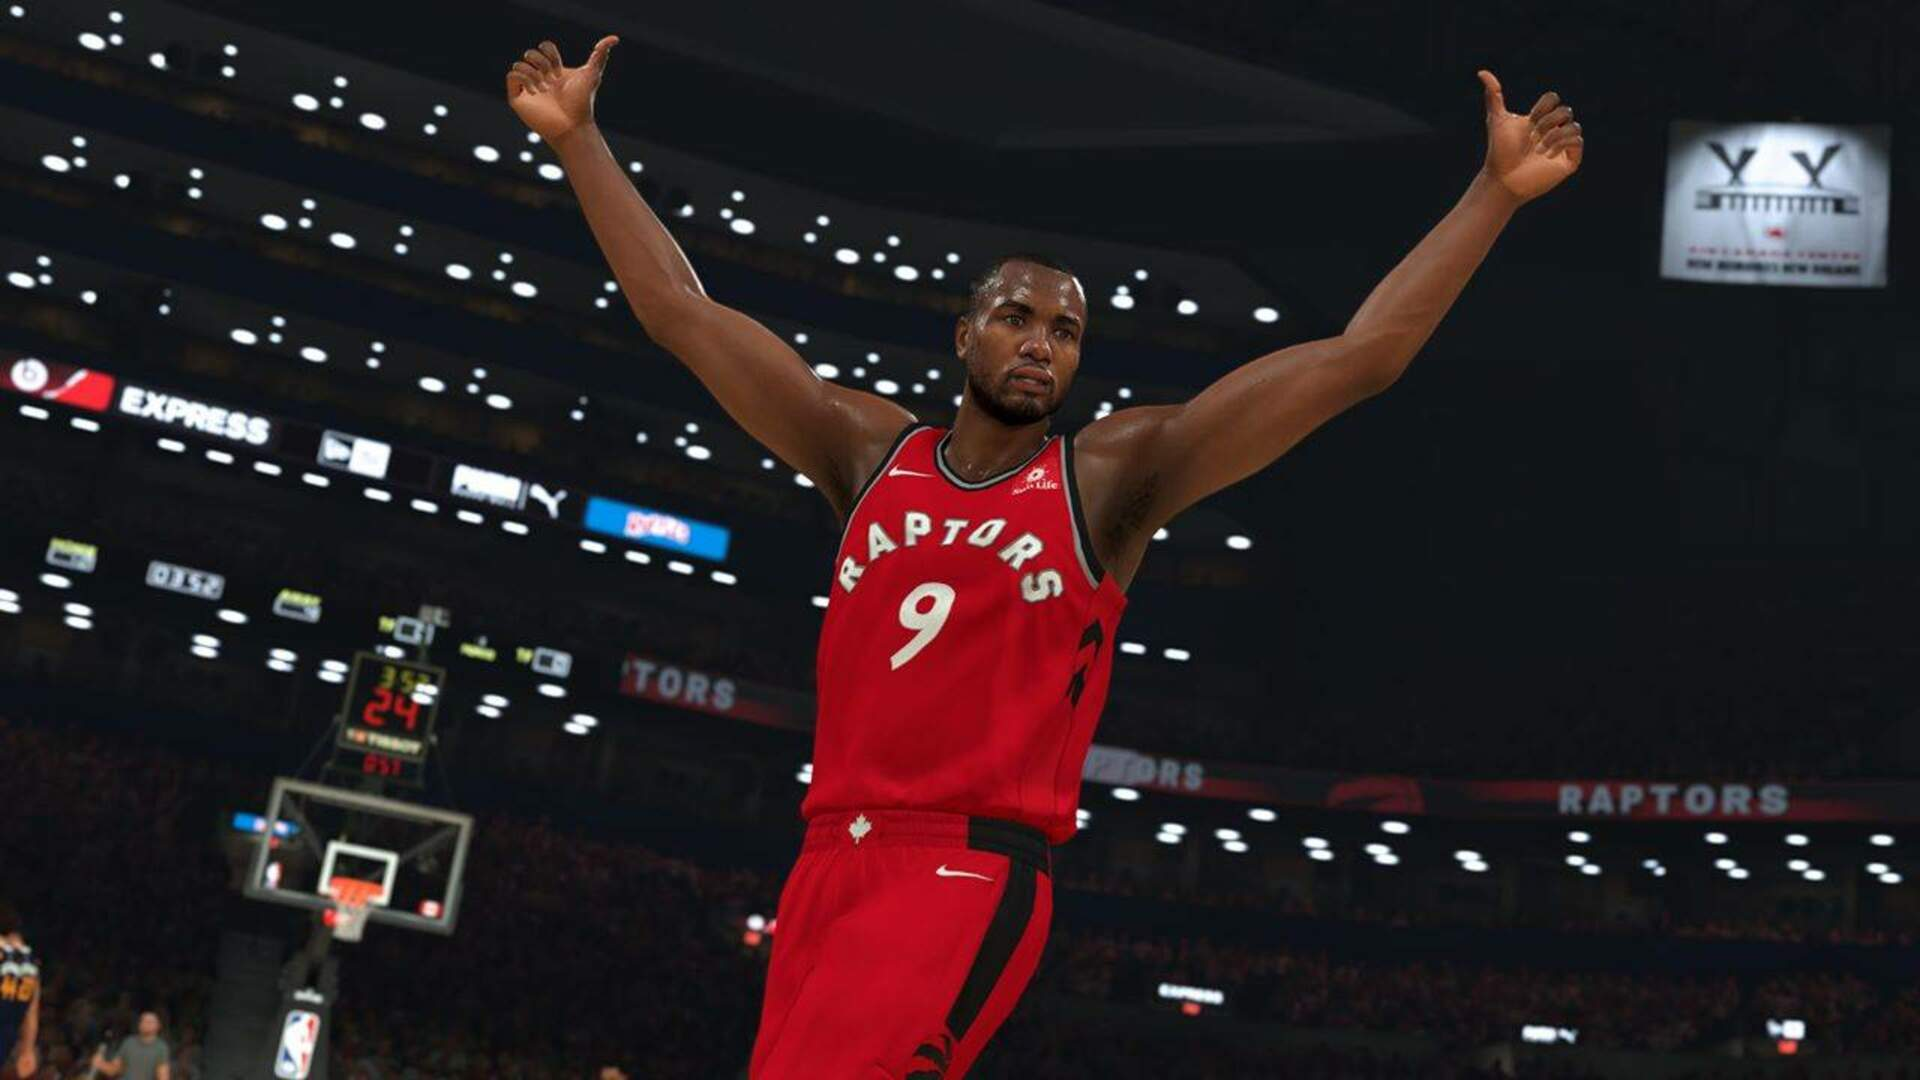 The NBA's Suspension Due to COVID-19 is Having an Adverse Effect on NBA 2K20 [Update]